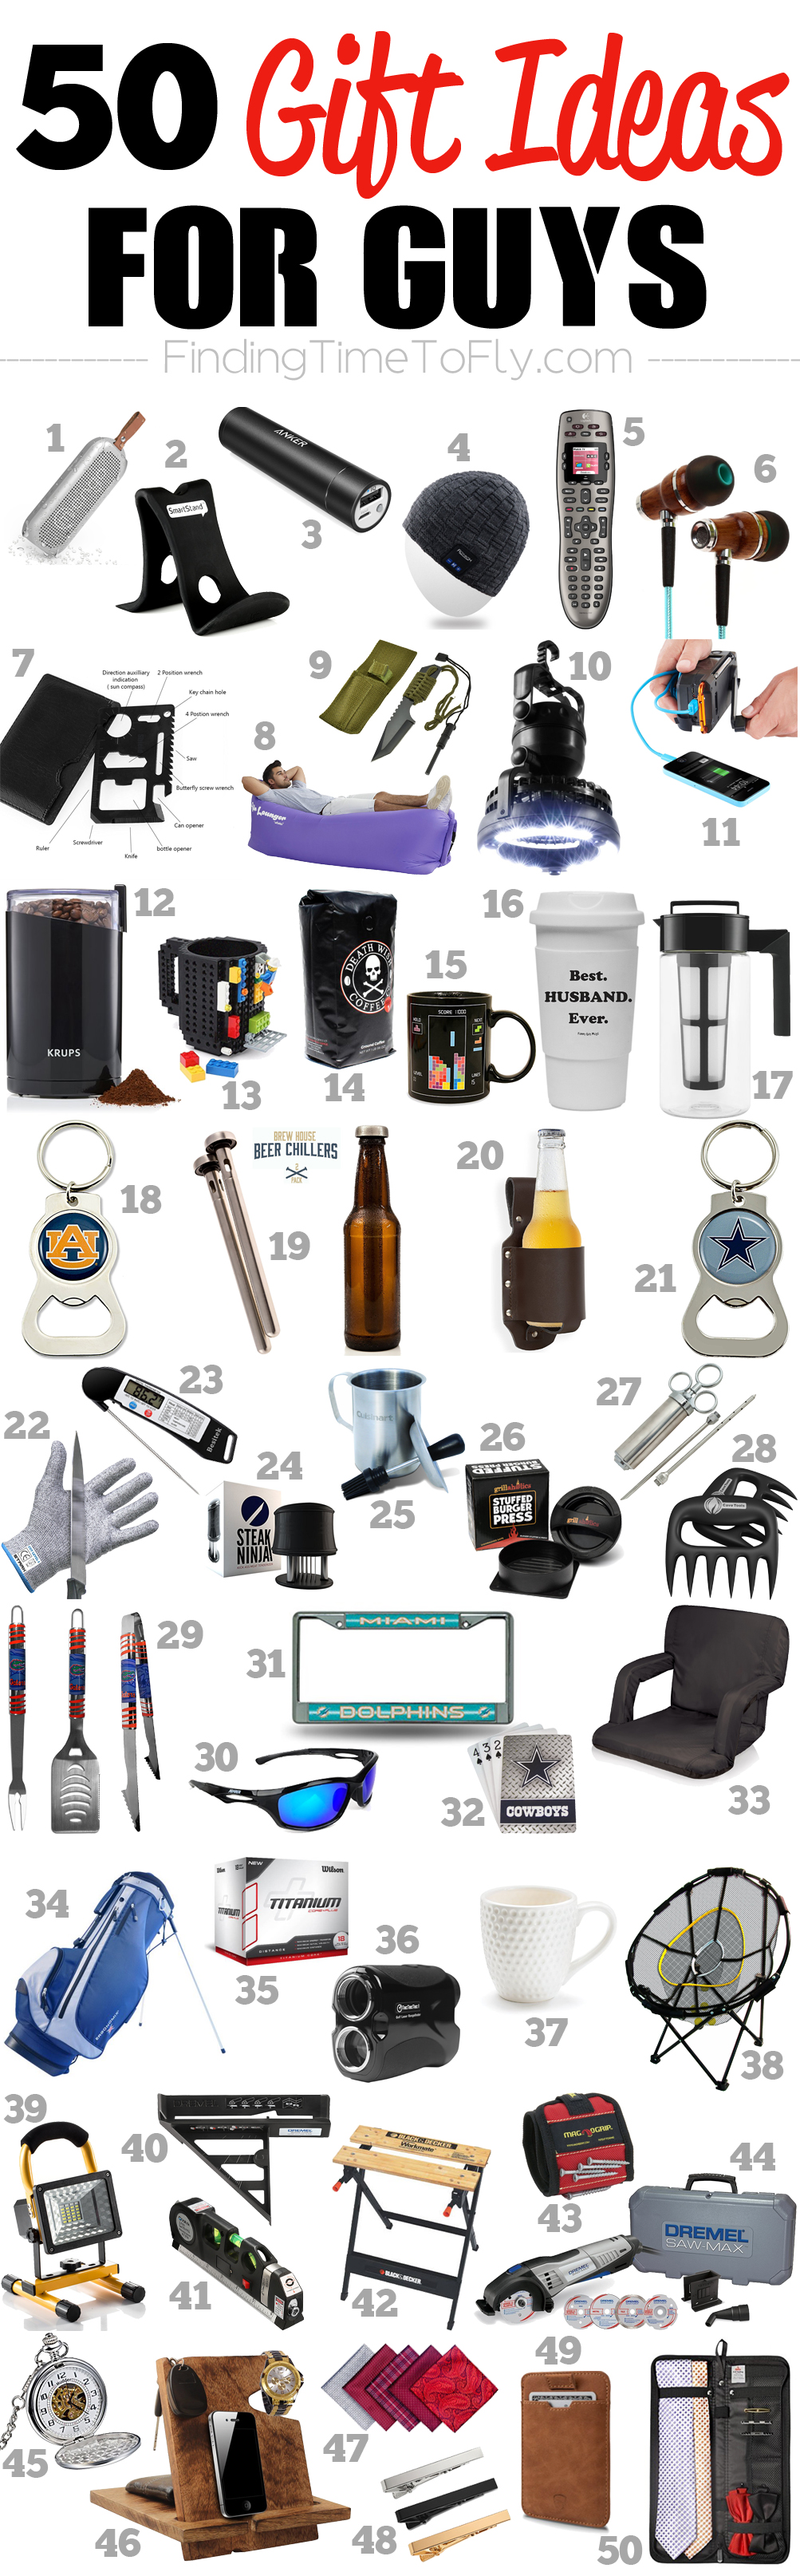 Saving this list of 50 Gifts for Guys. A great list of gift ideas for men to shop for birthdays, Valentine's Day, Father's Day, graduation, or Christmas gifts.